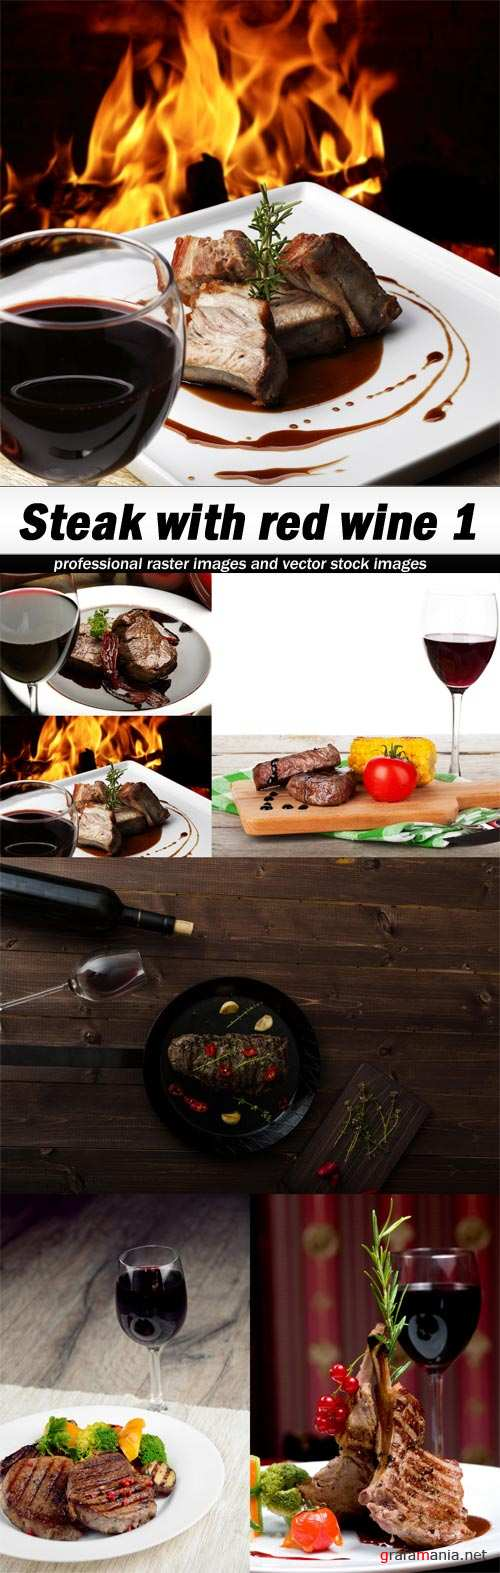 Steak with red wine 1-6xJPEGs